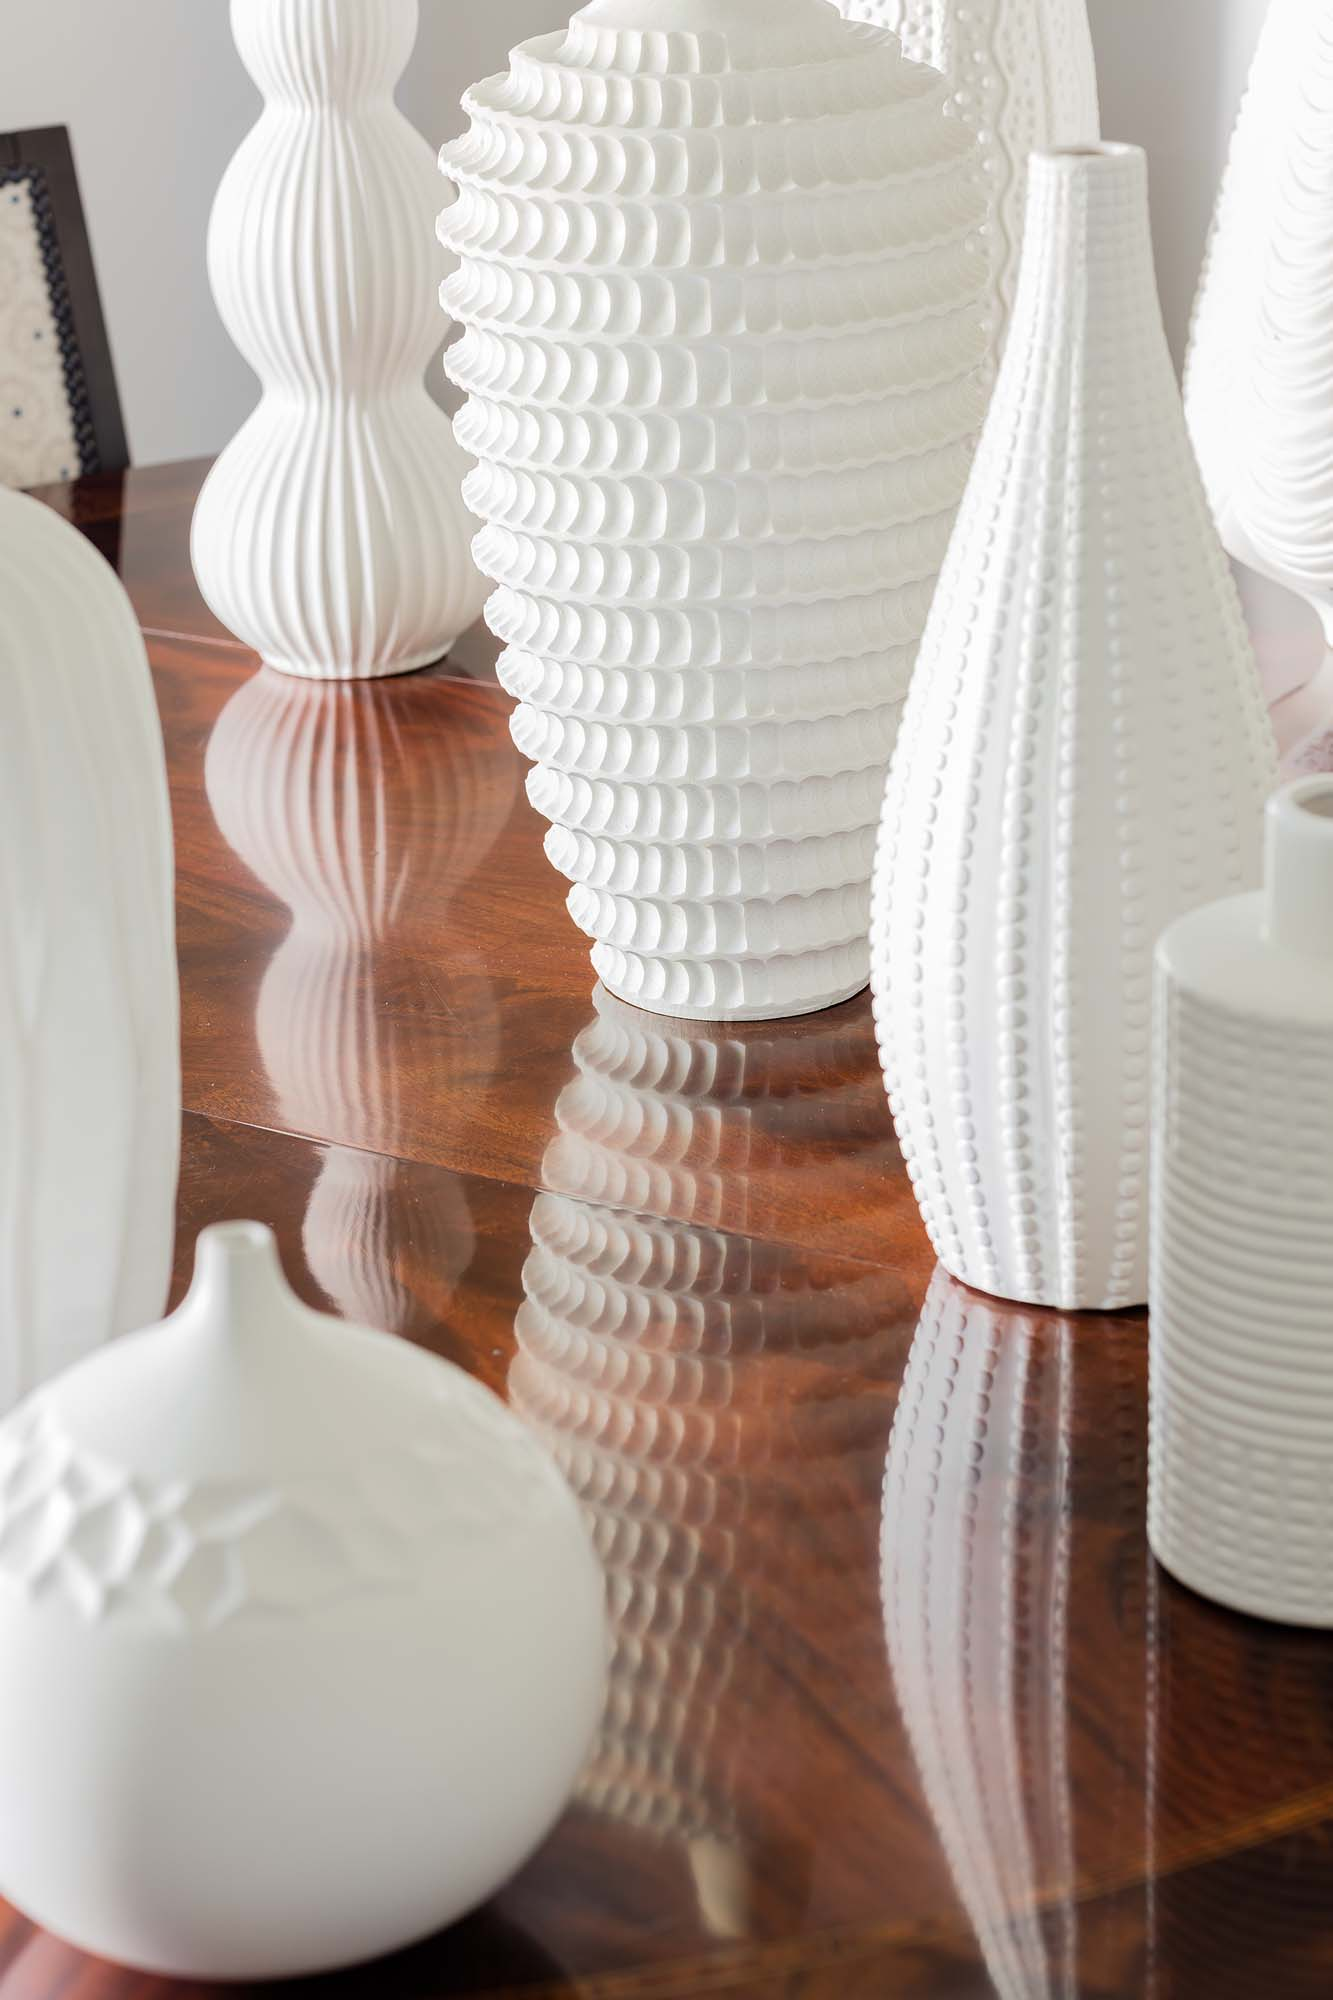 Polished wooden table with white modern vases